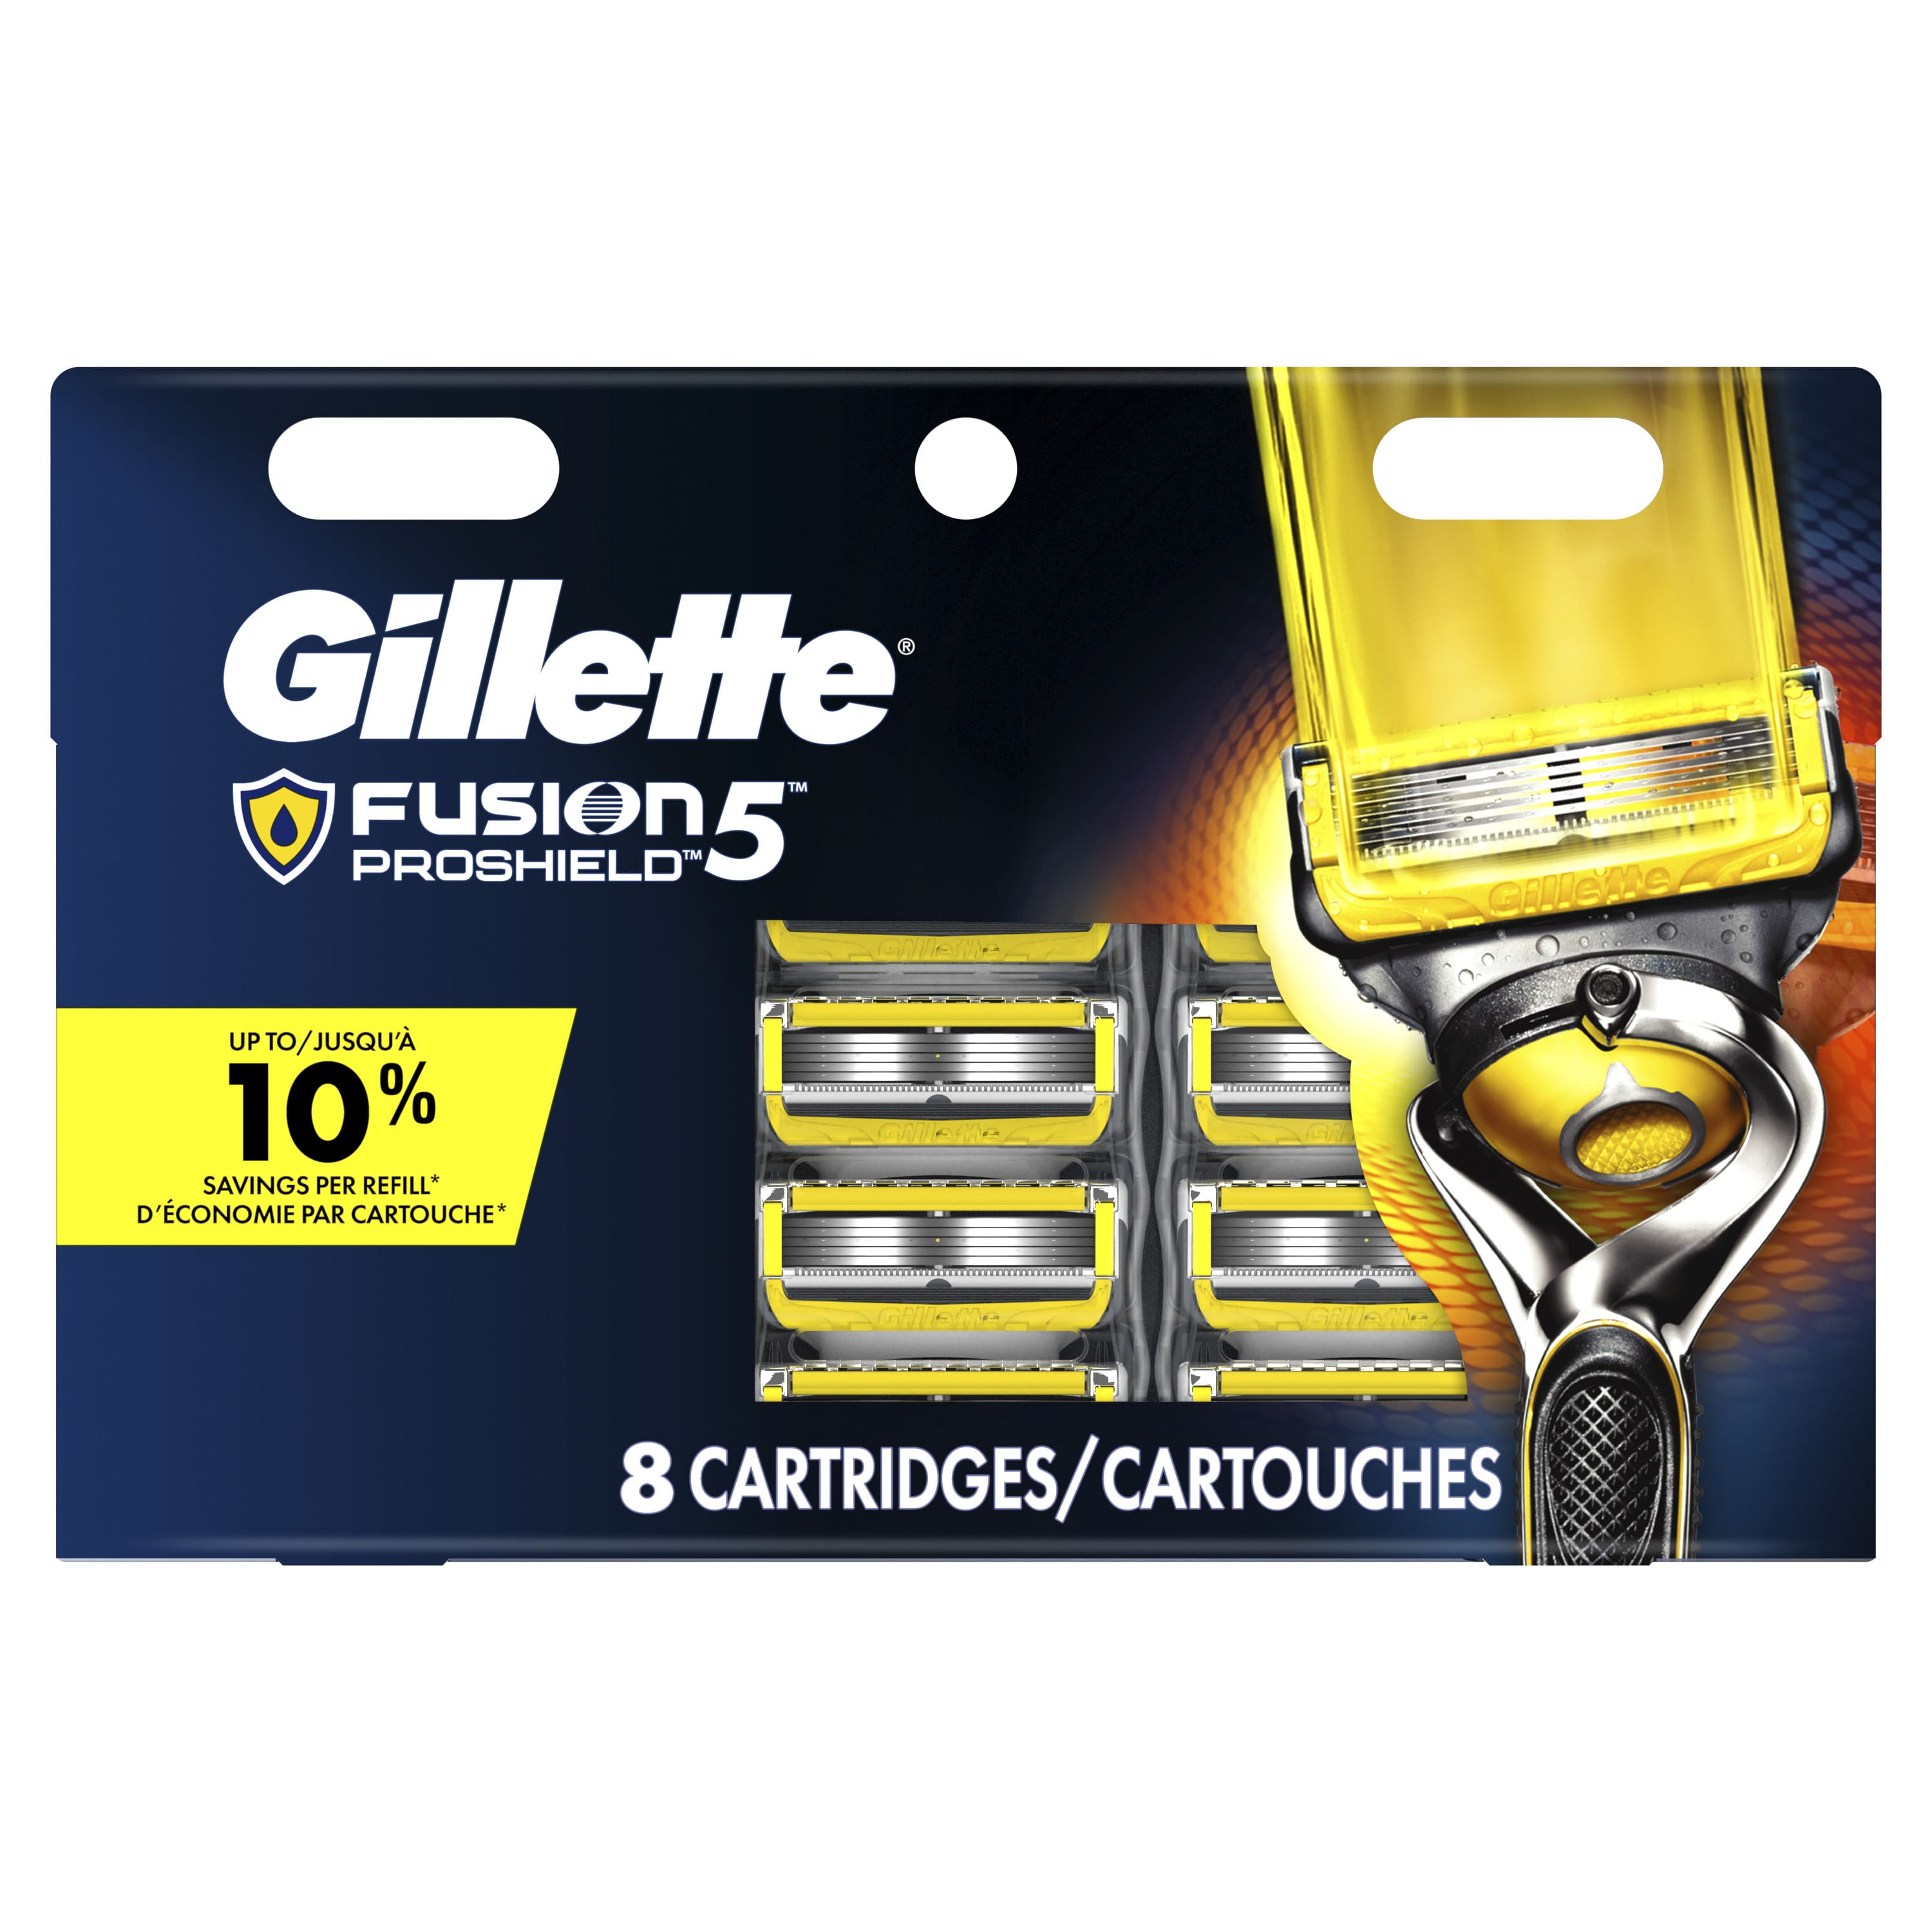 Gilette flash sale For him/her at Walmart- 50% off fusion prochill blades. 8 blades for $18. Plus other deals